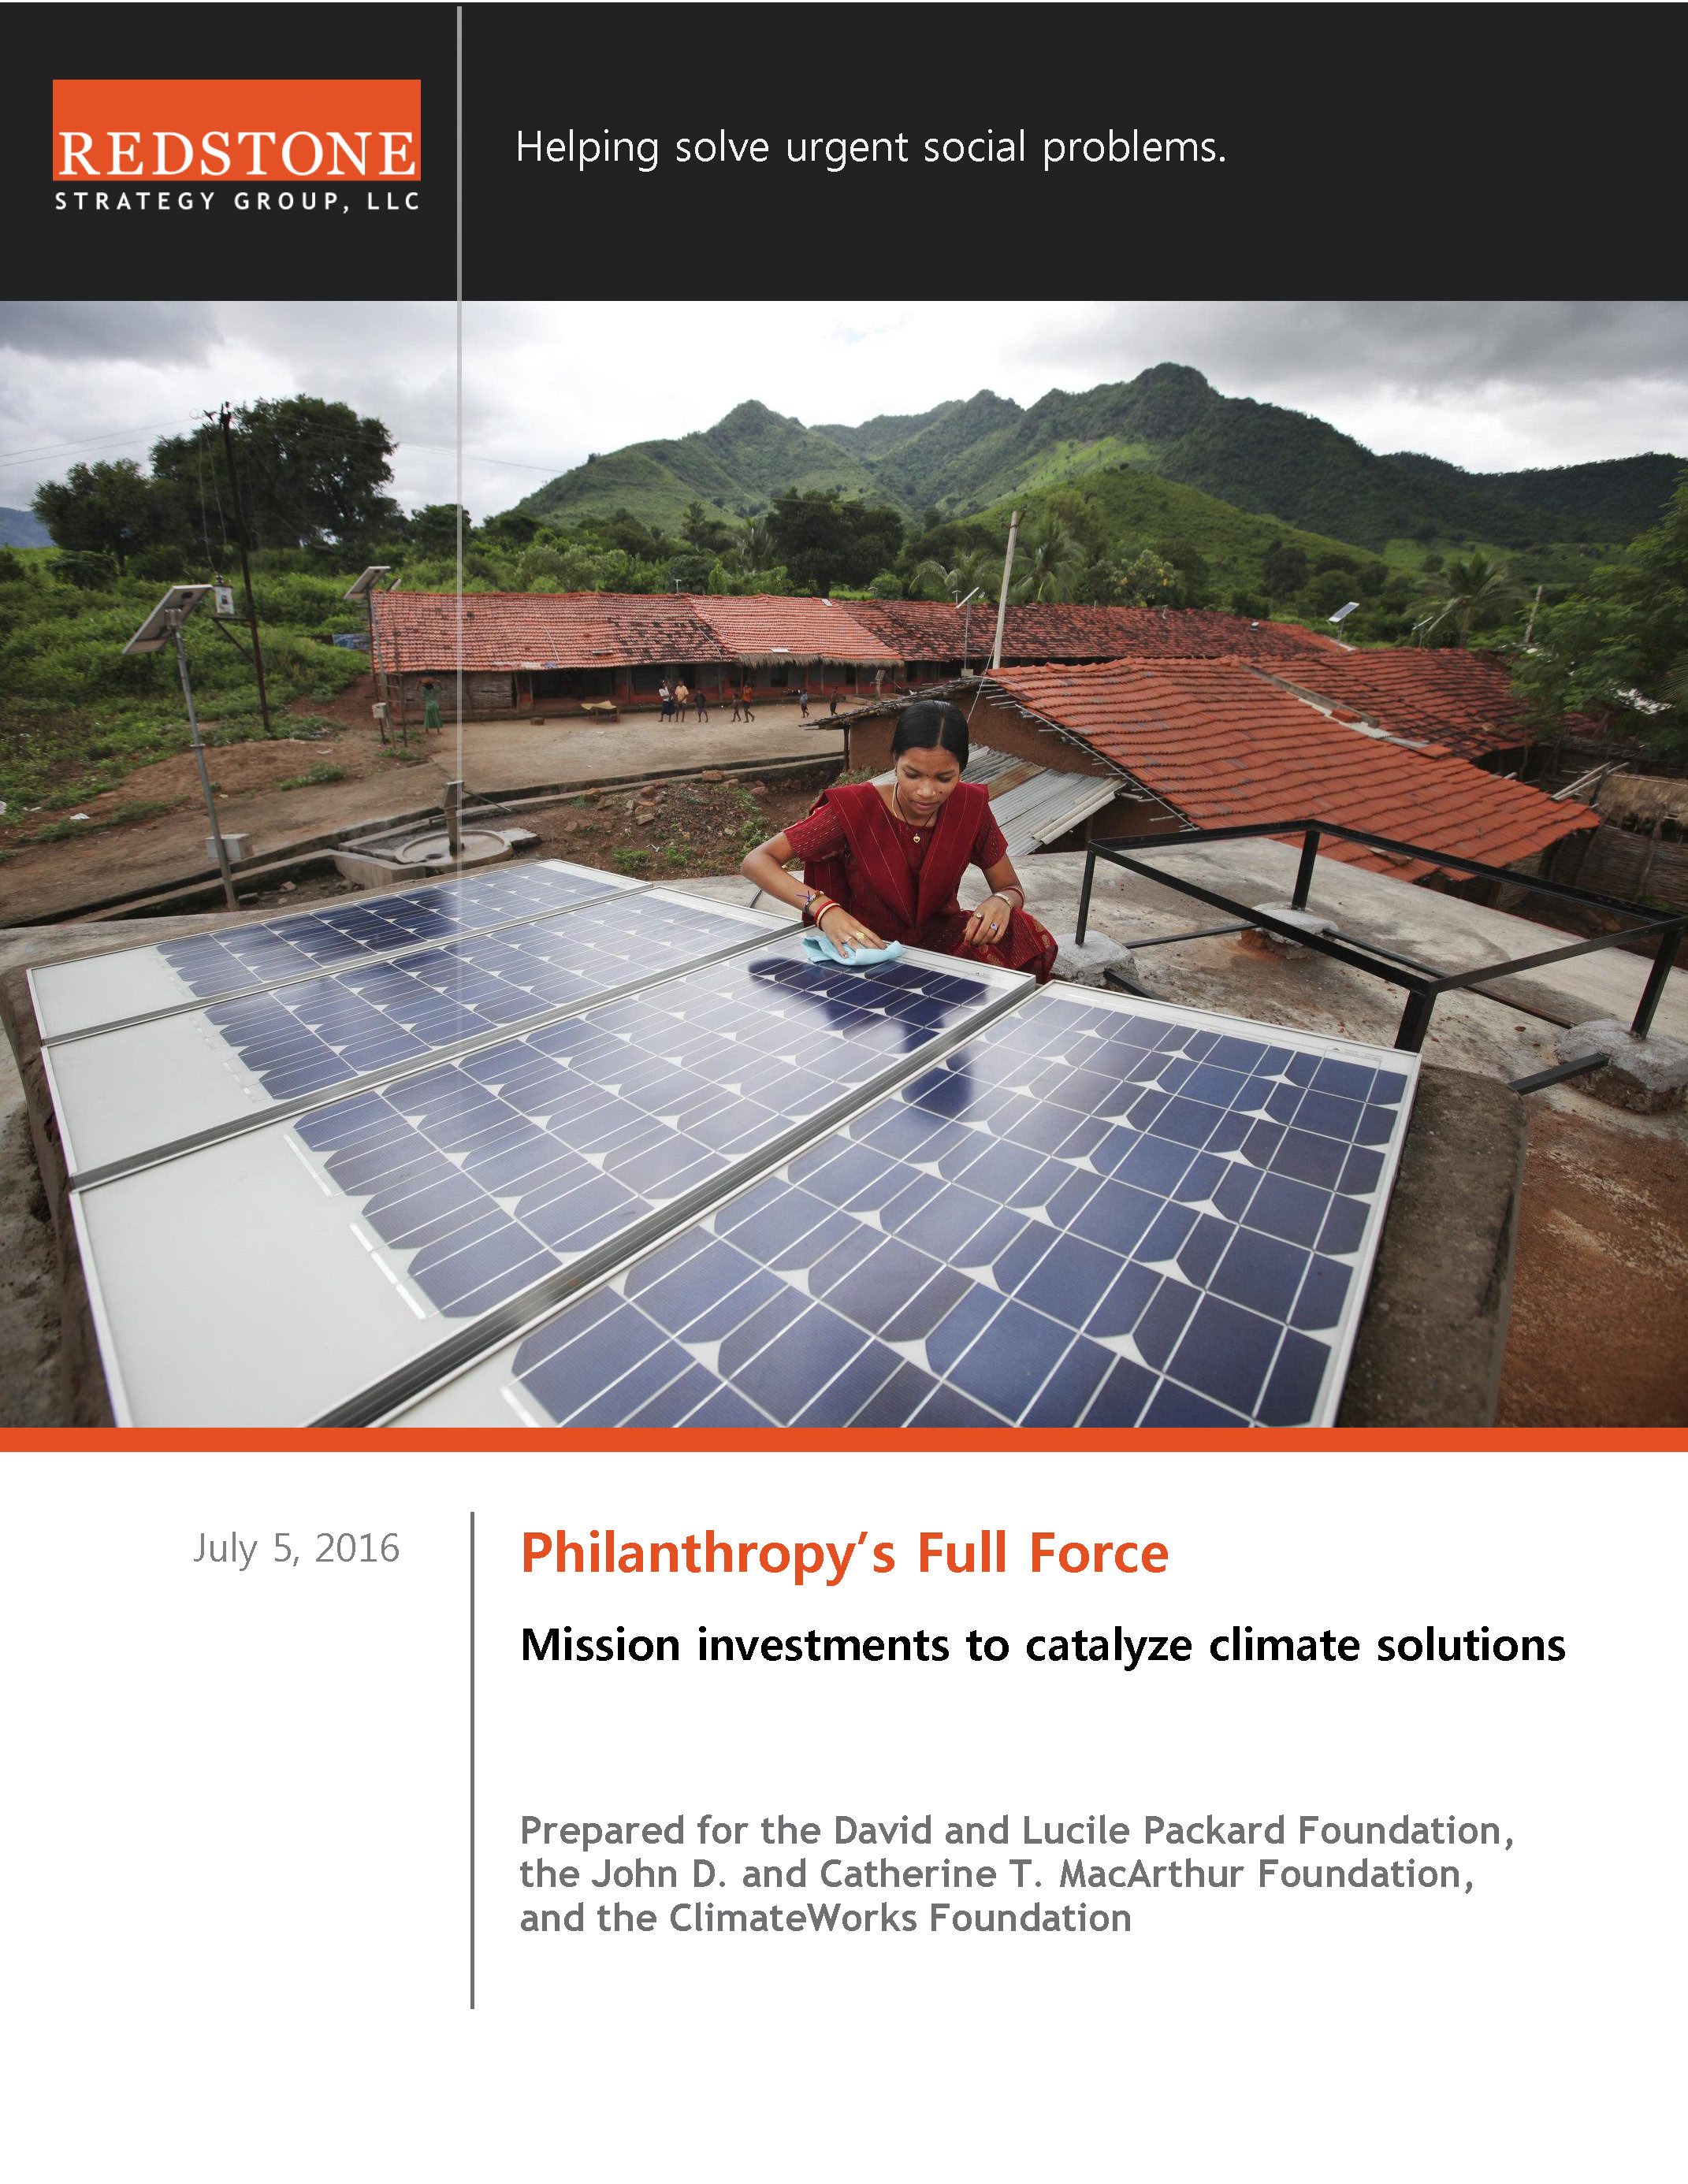 Mission investments to catalyze climate solutions